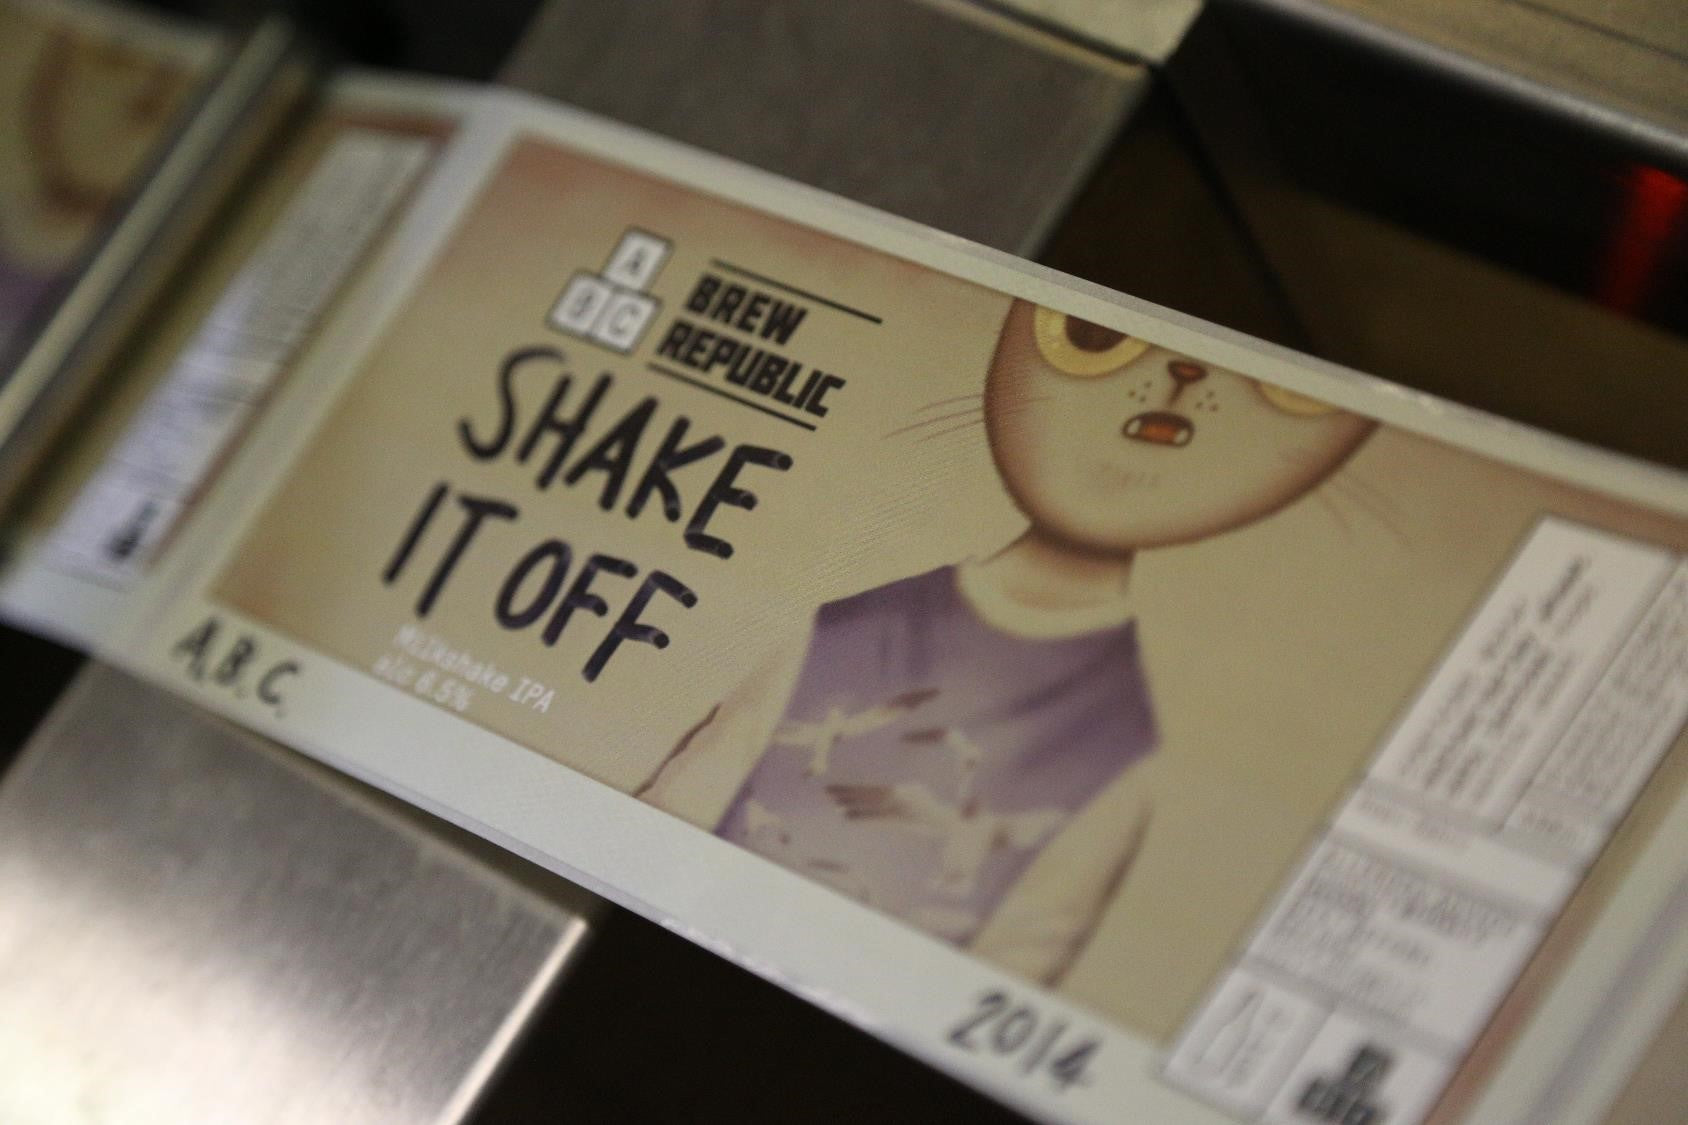 Introducing our Alphabet & Brew Republic collab beer - Shake It Off.